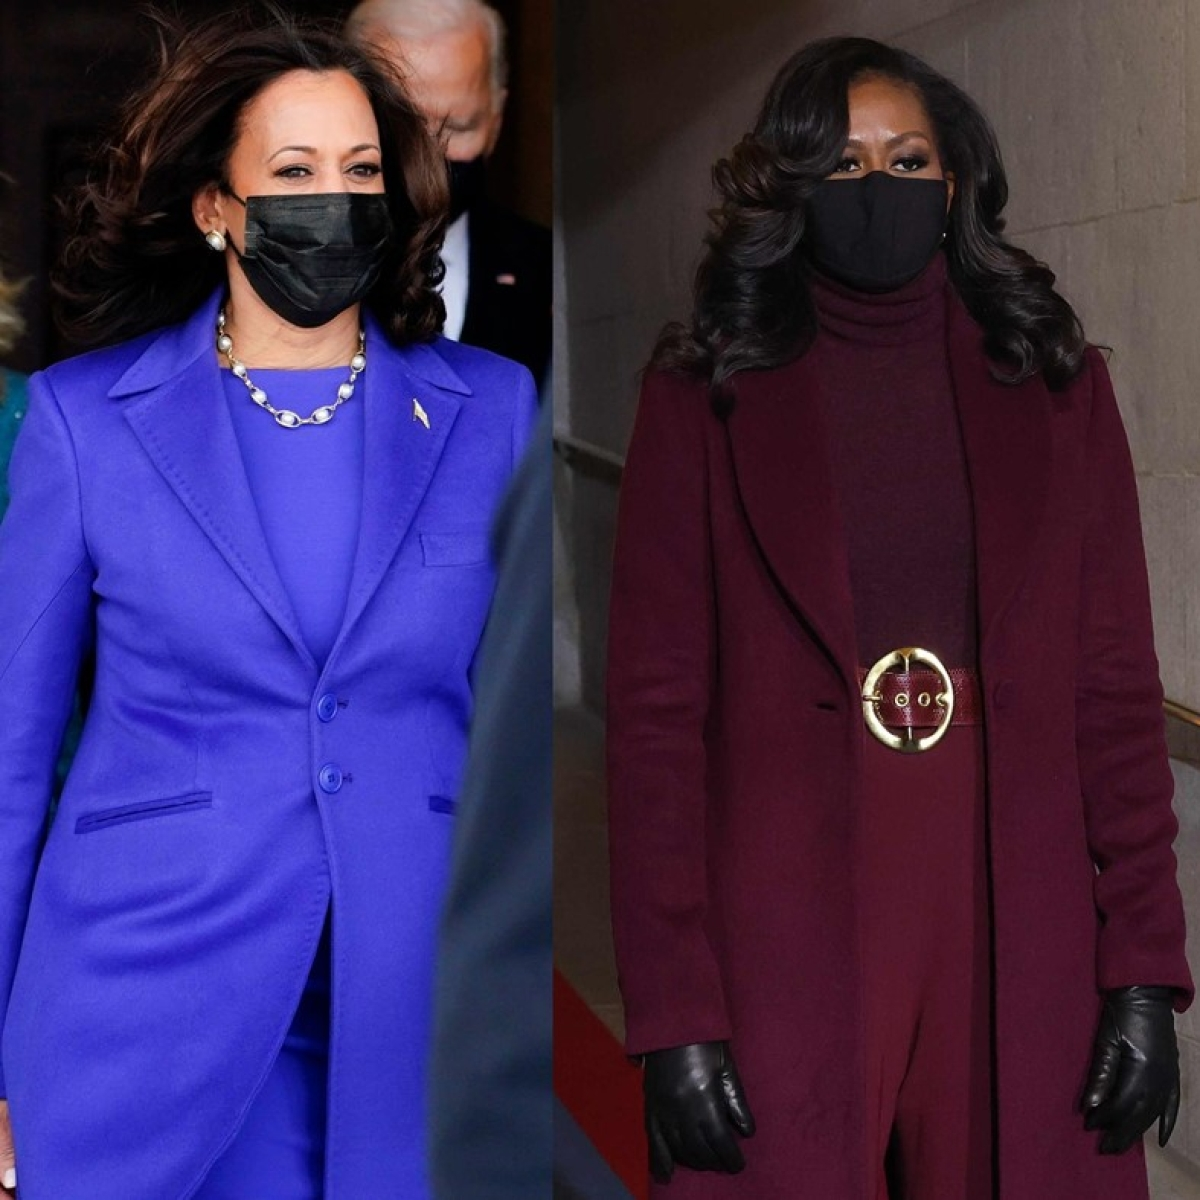 Why did Kamala Harris, Michelle Obama, and Hillary Clinton wear purple outfits to Biden's inauguration?